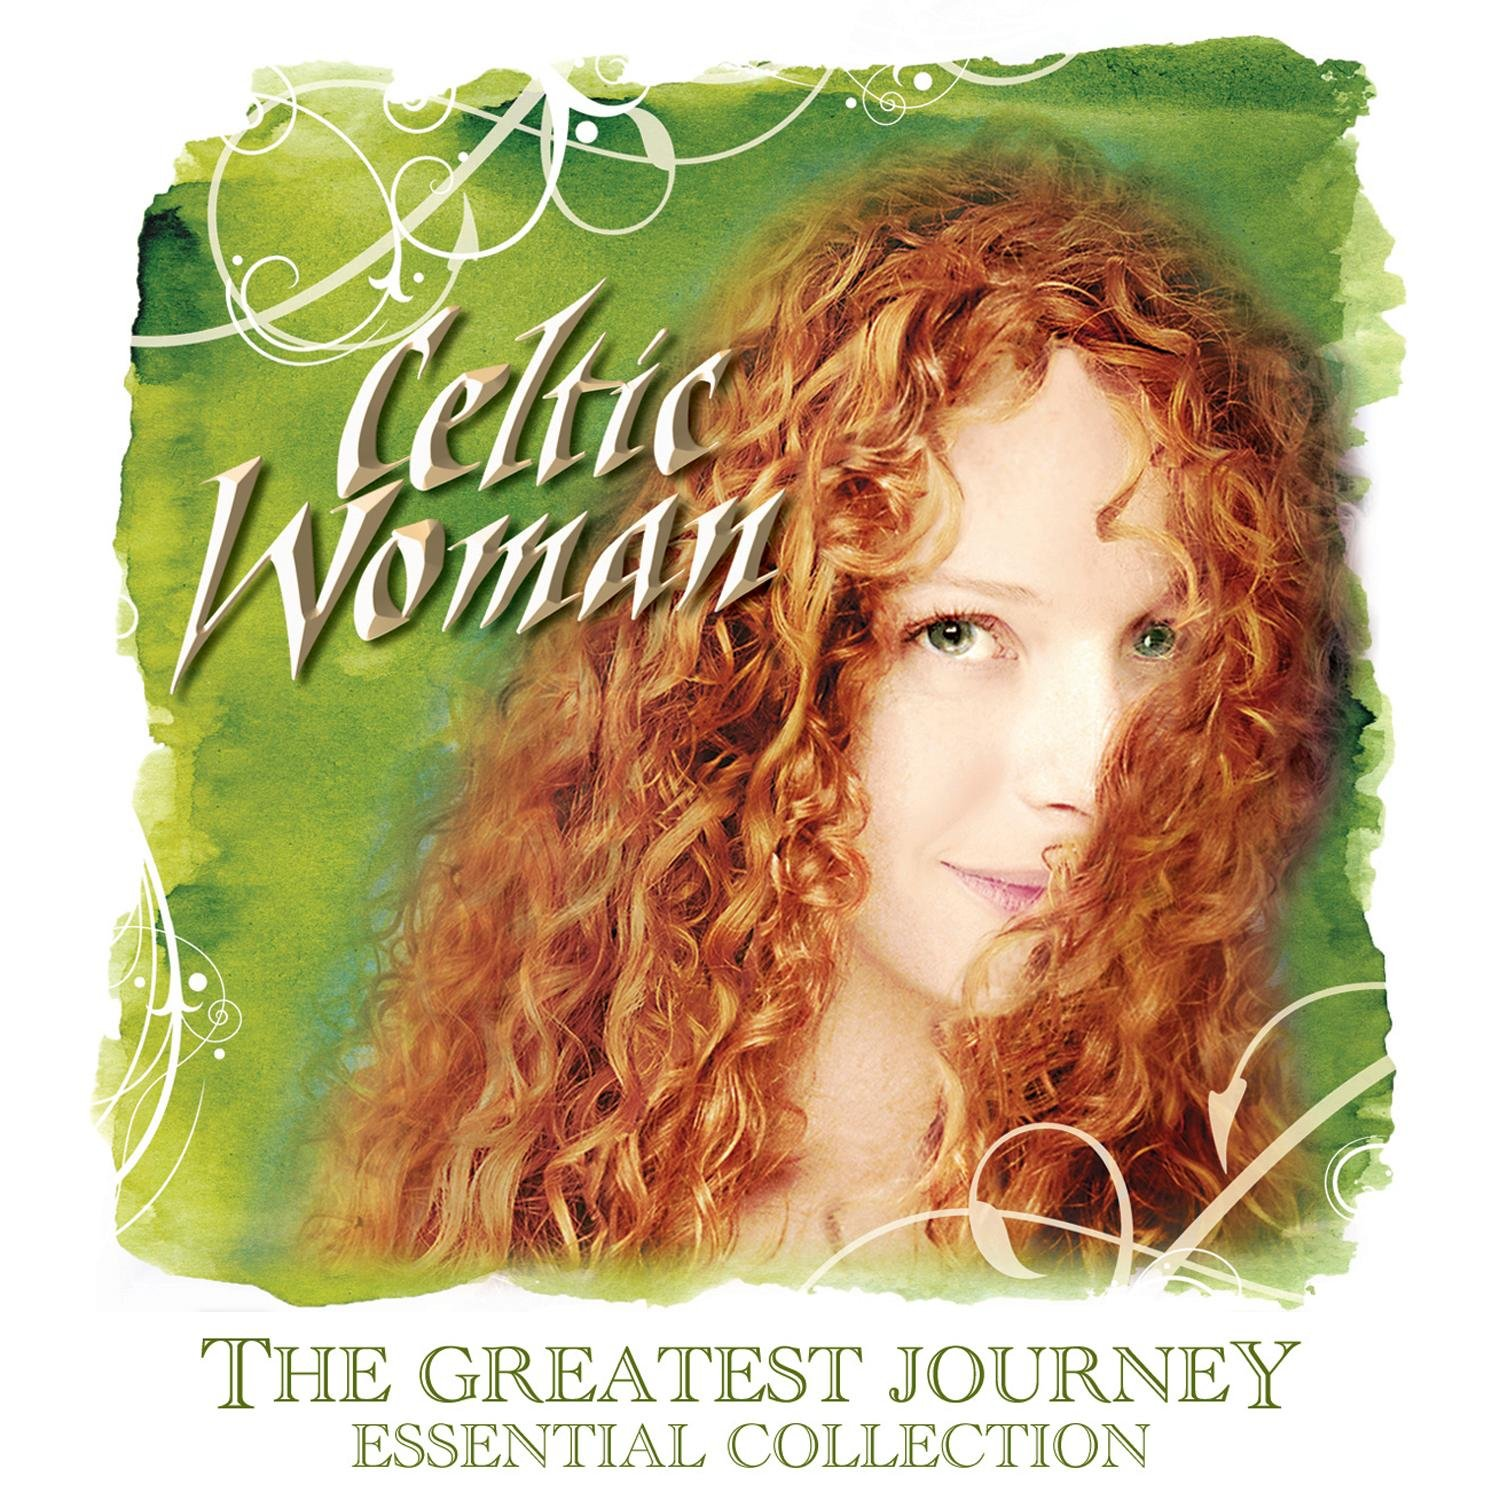 DVD : Celtic Woman - The Greatest Journey (DVD)